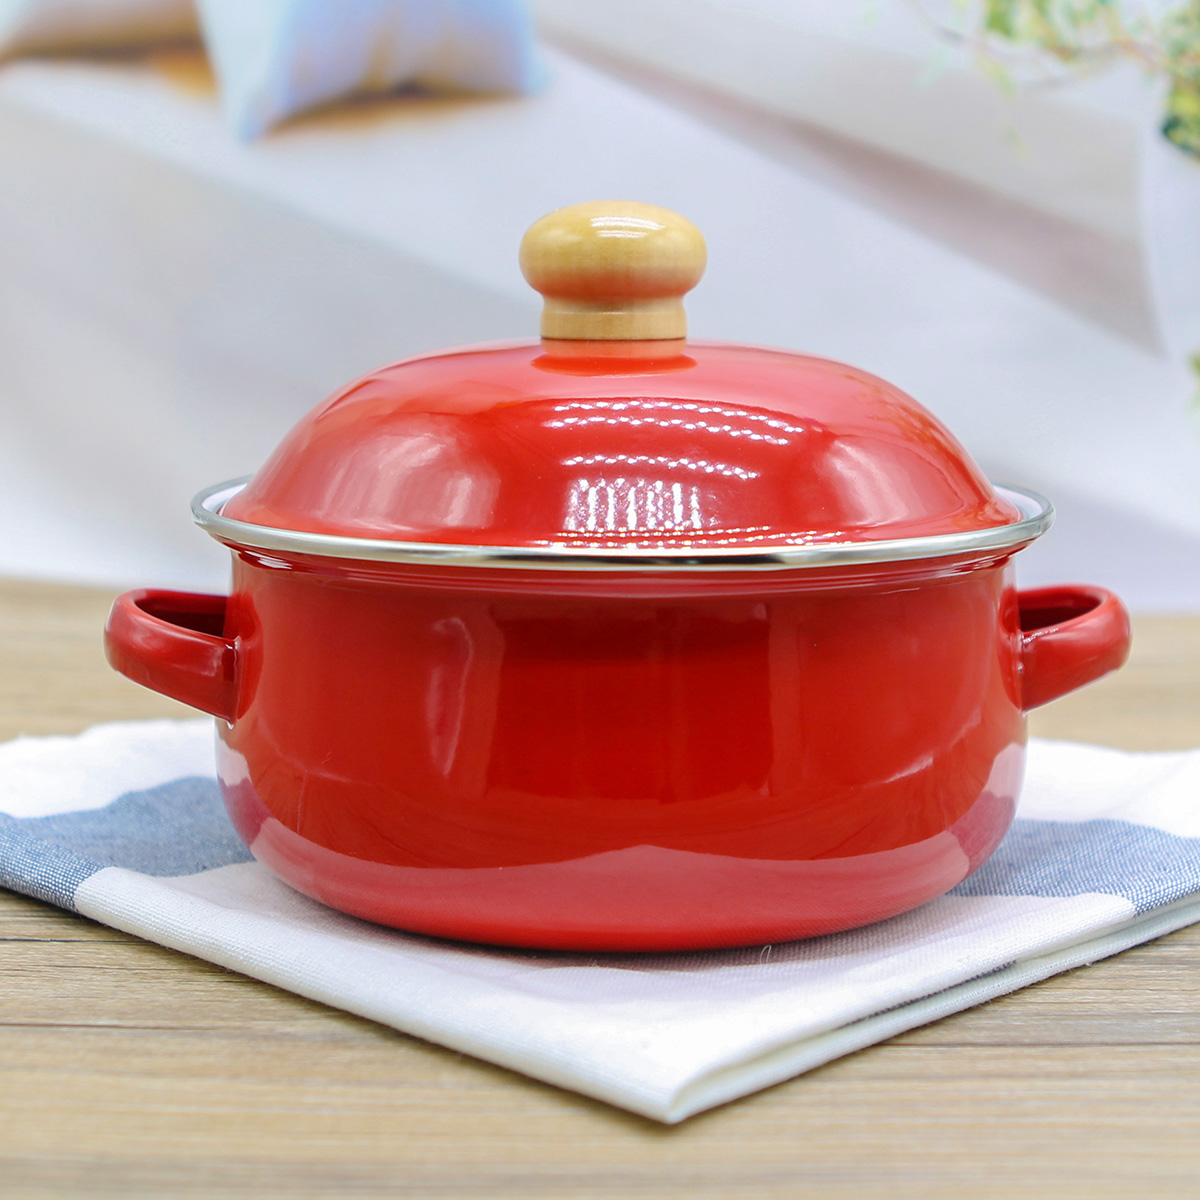 Special Offer Japanese 18cm 1.5L Enamel Tomato Soup Pot Containing Fresh Cover Gas Induction Cooker Can Be Used Free Shipping